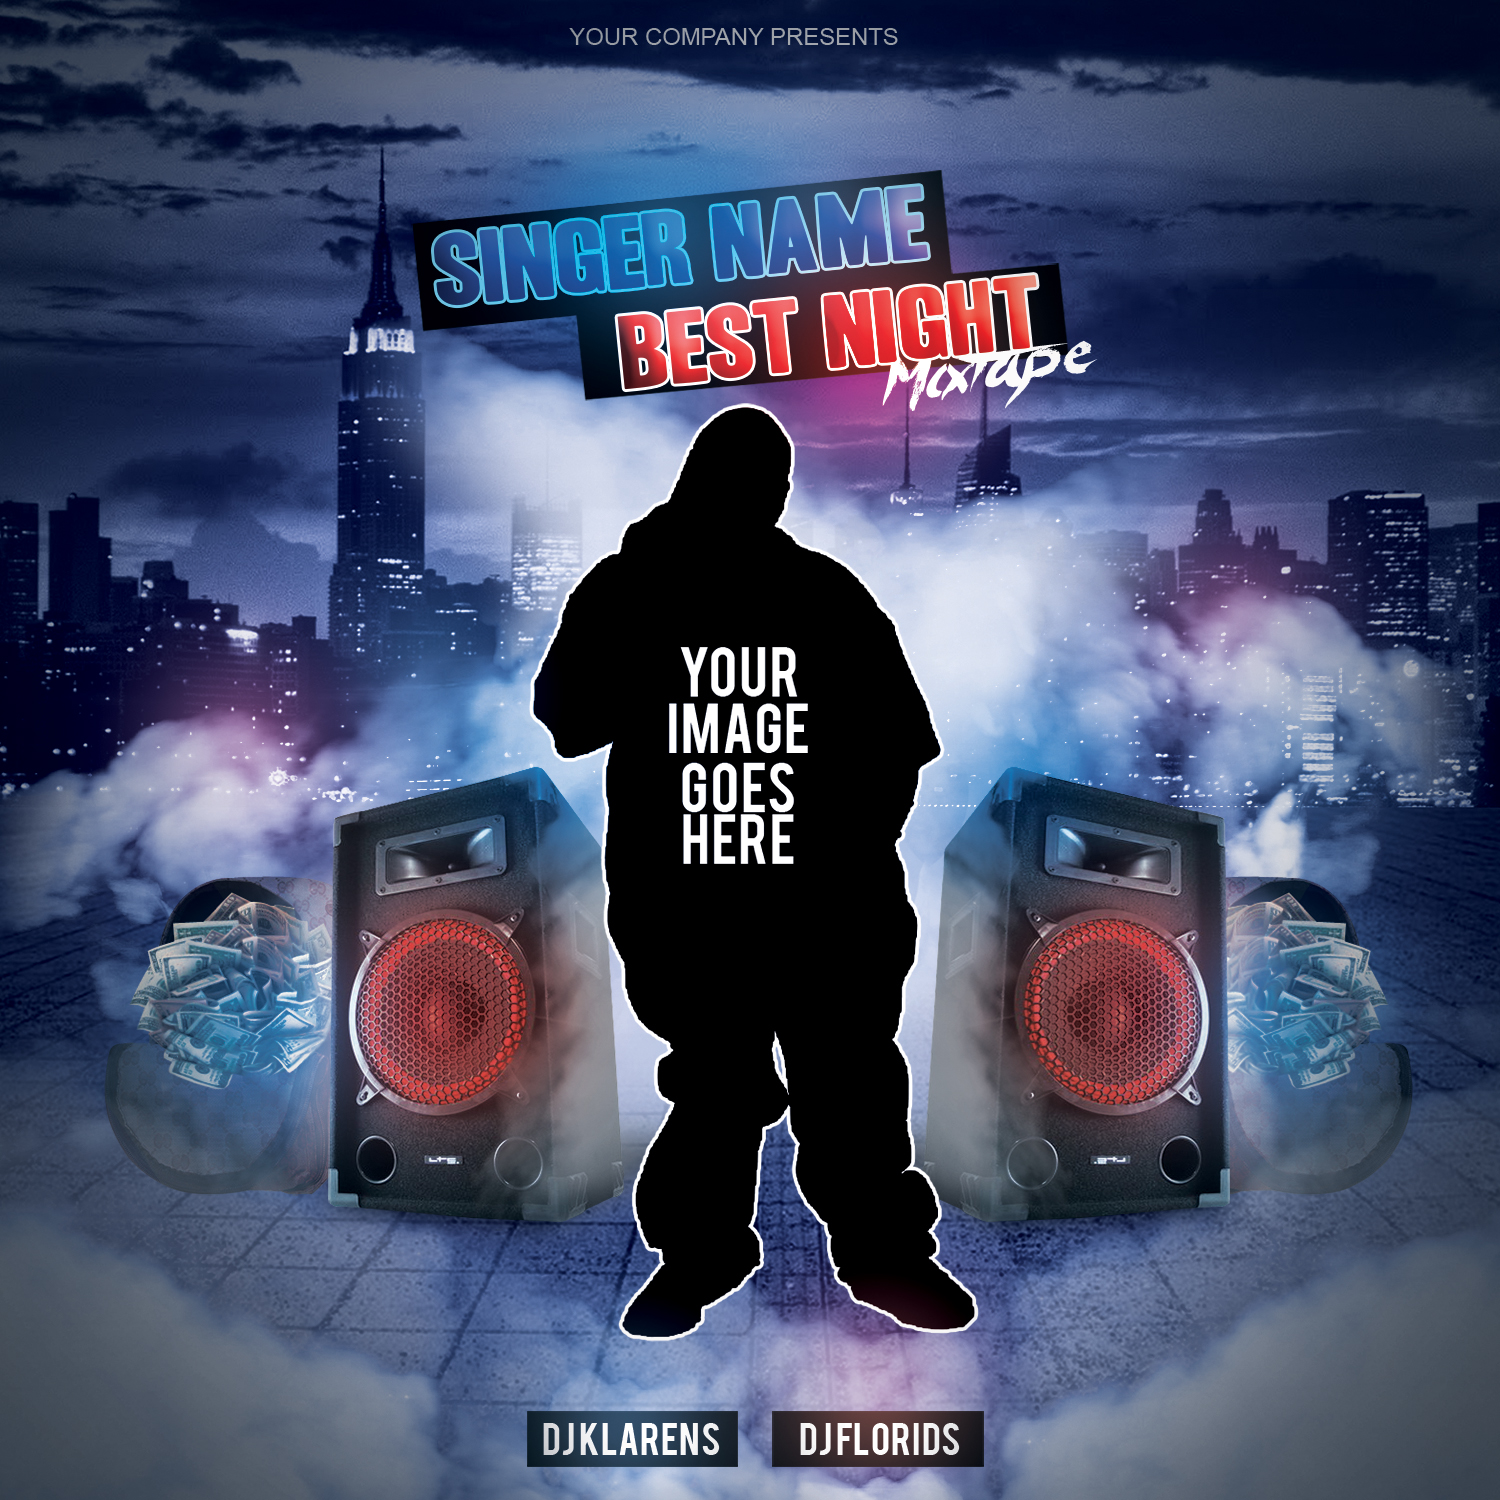 Mixtape Album Cd Cover Free Psd Template By Klarensm On